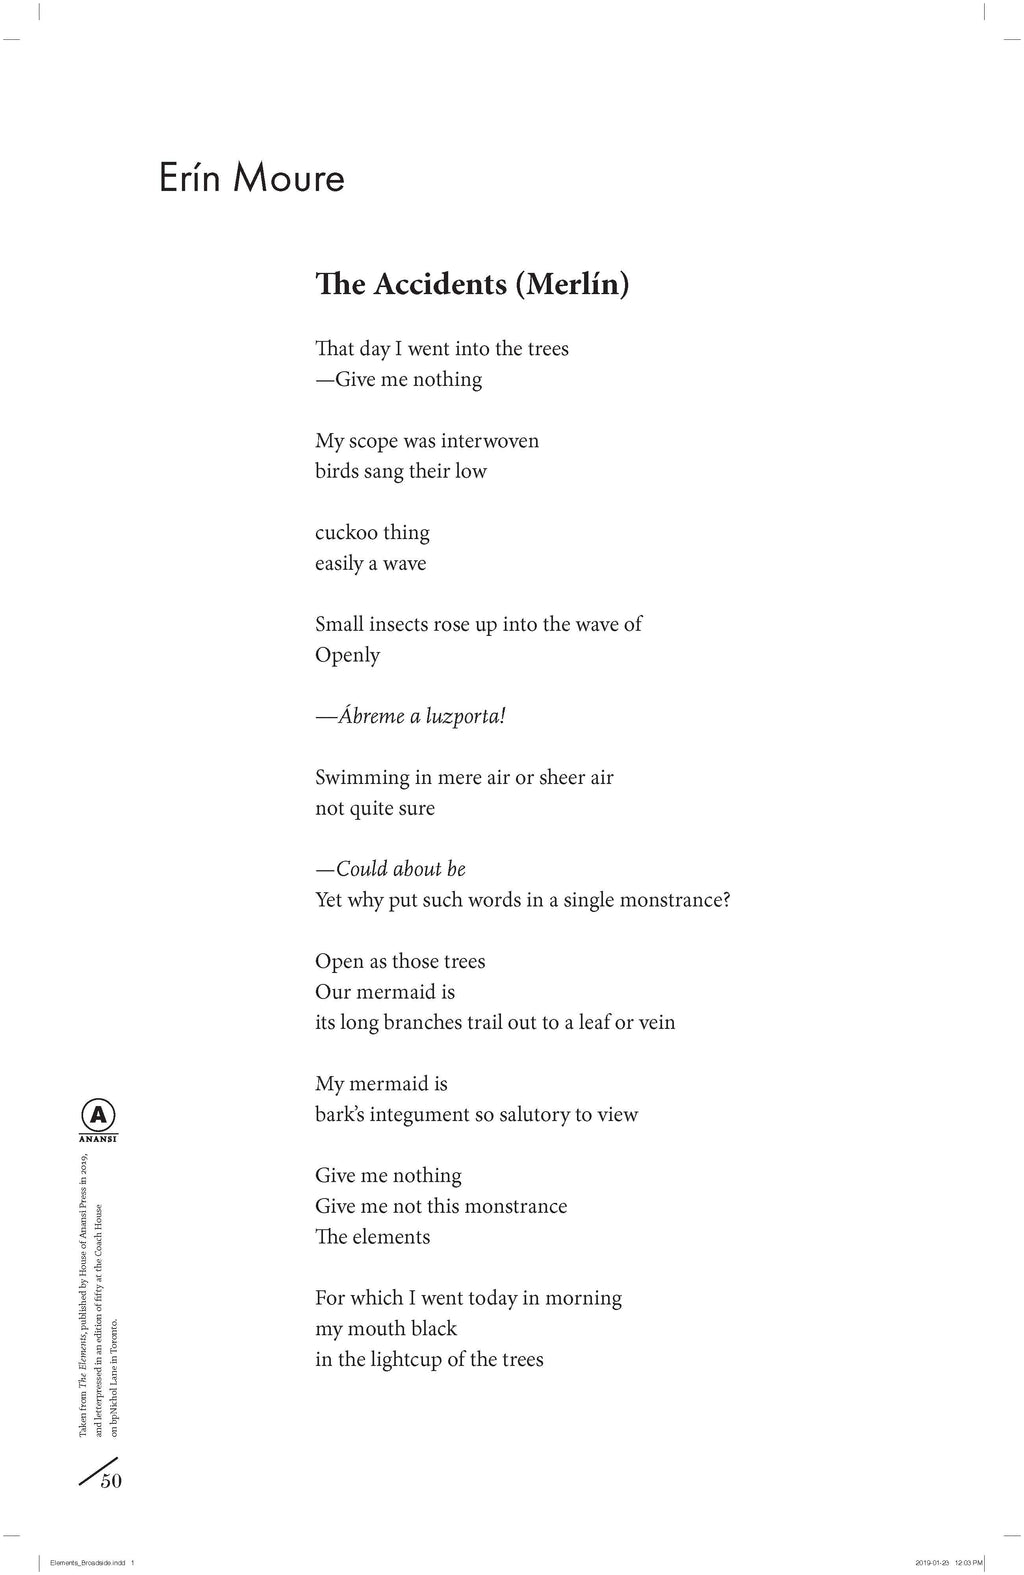 The Accidents (Merlín) by Erín Moure (from The Elements)